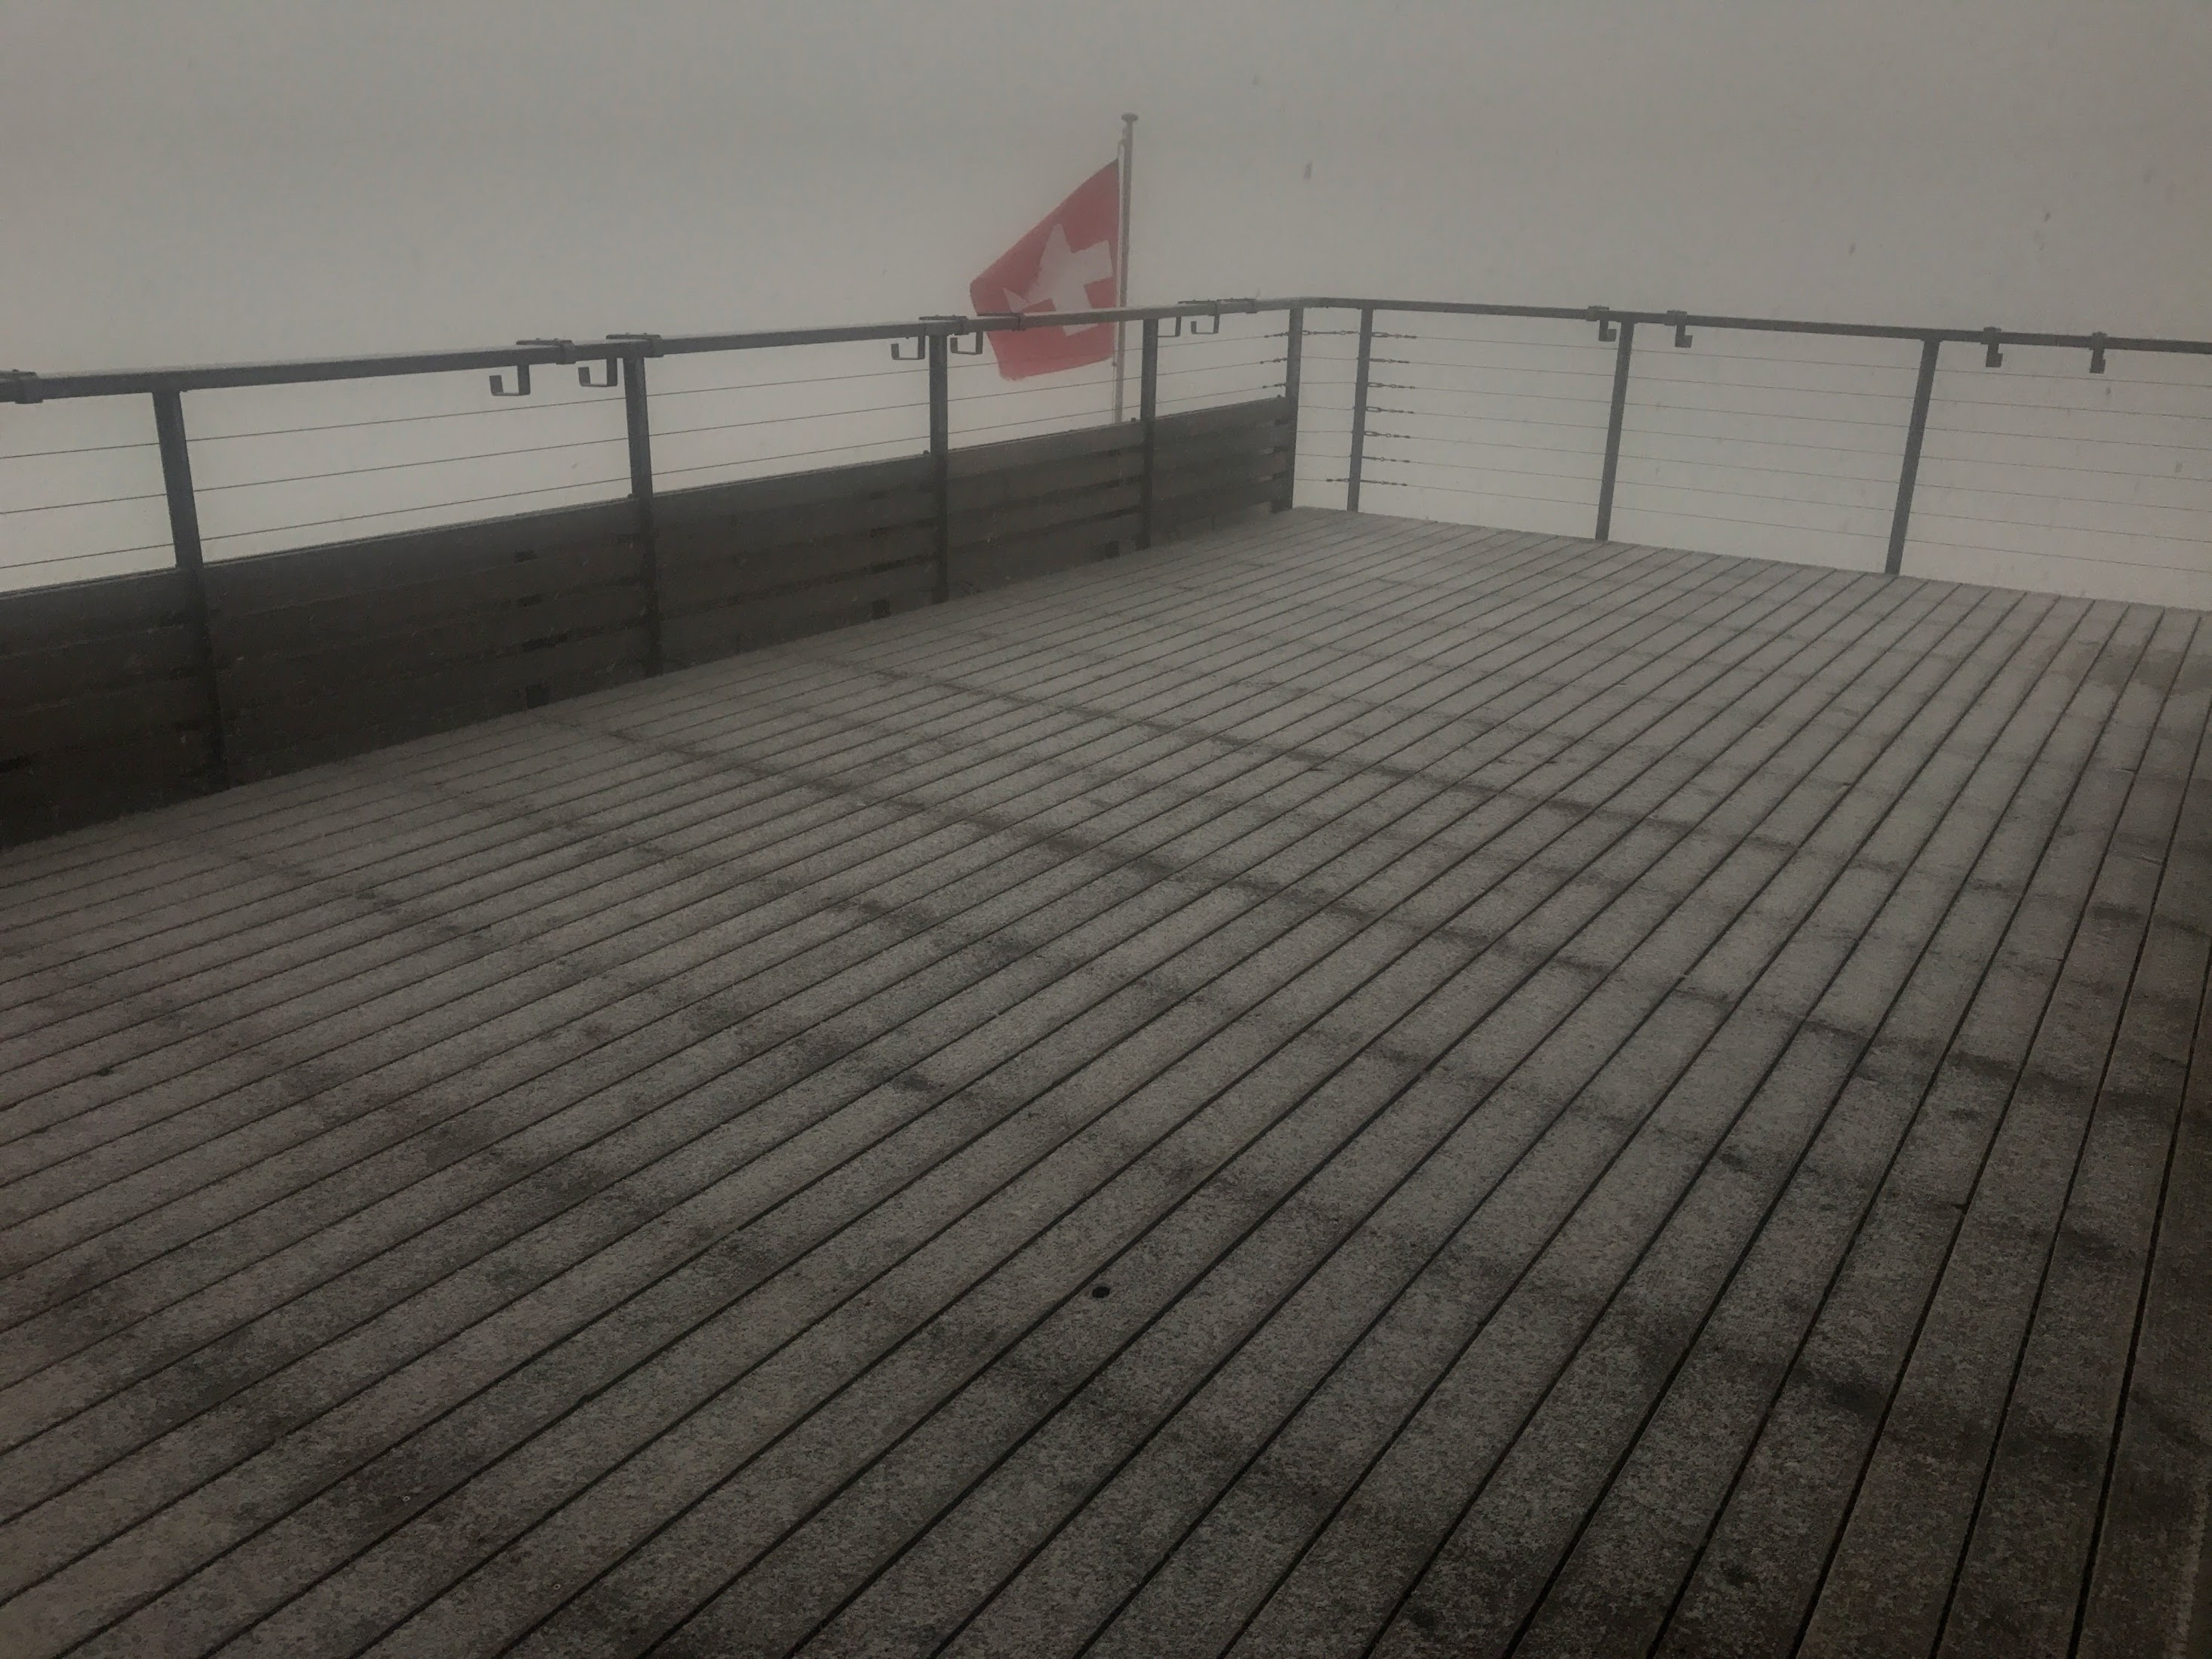 Snowfall on the Silvretta Hut deck